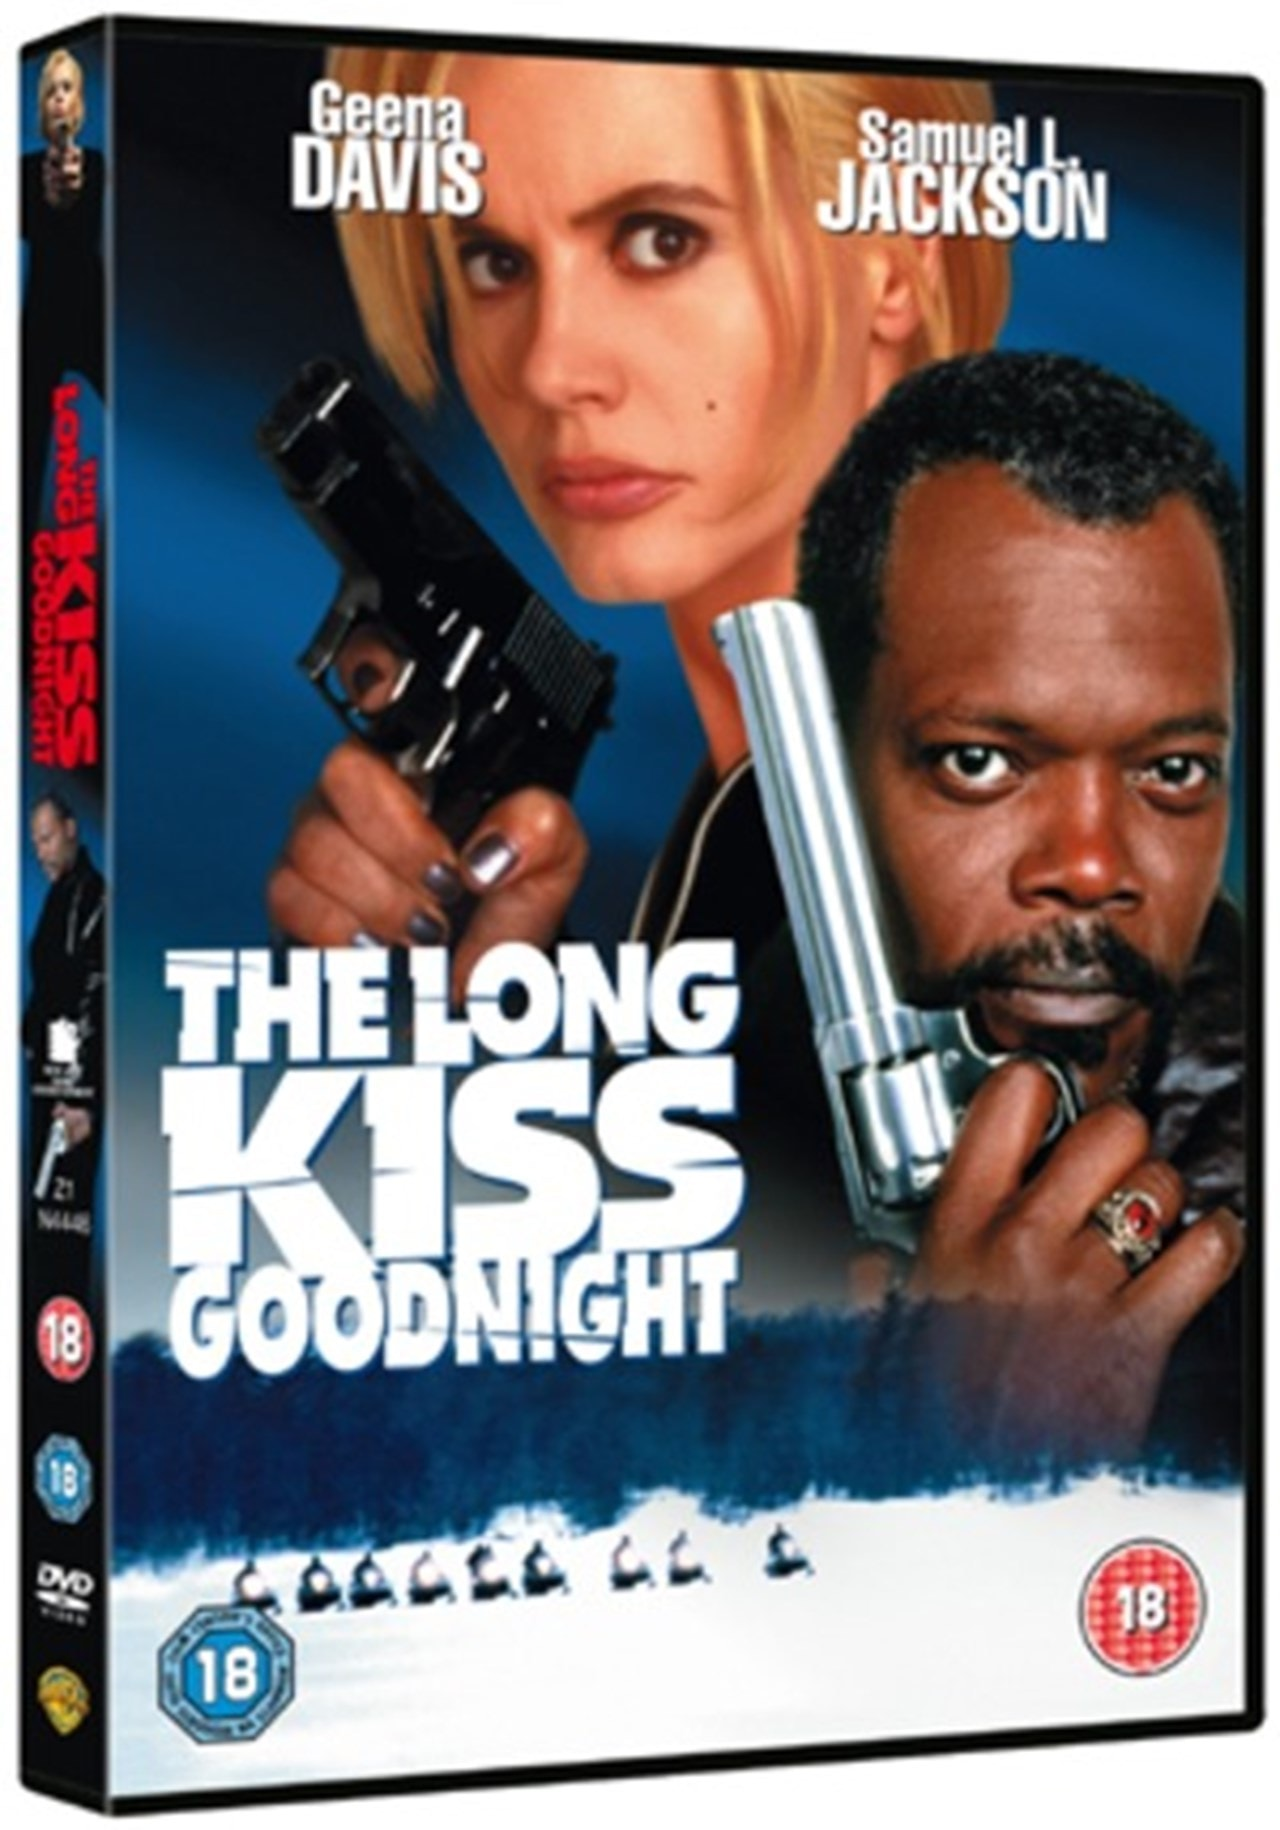 The Long Kiss Goodnight - 1